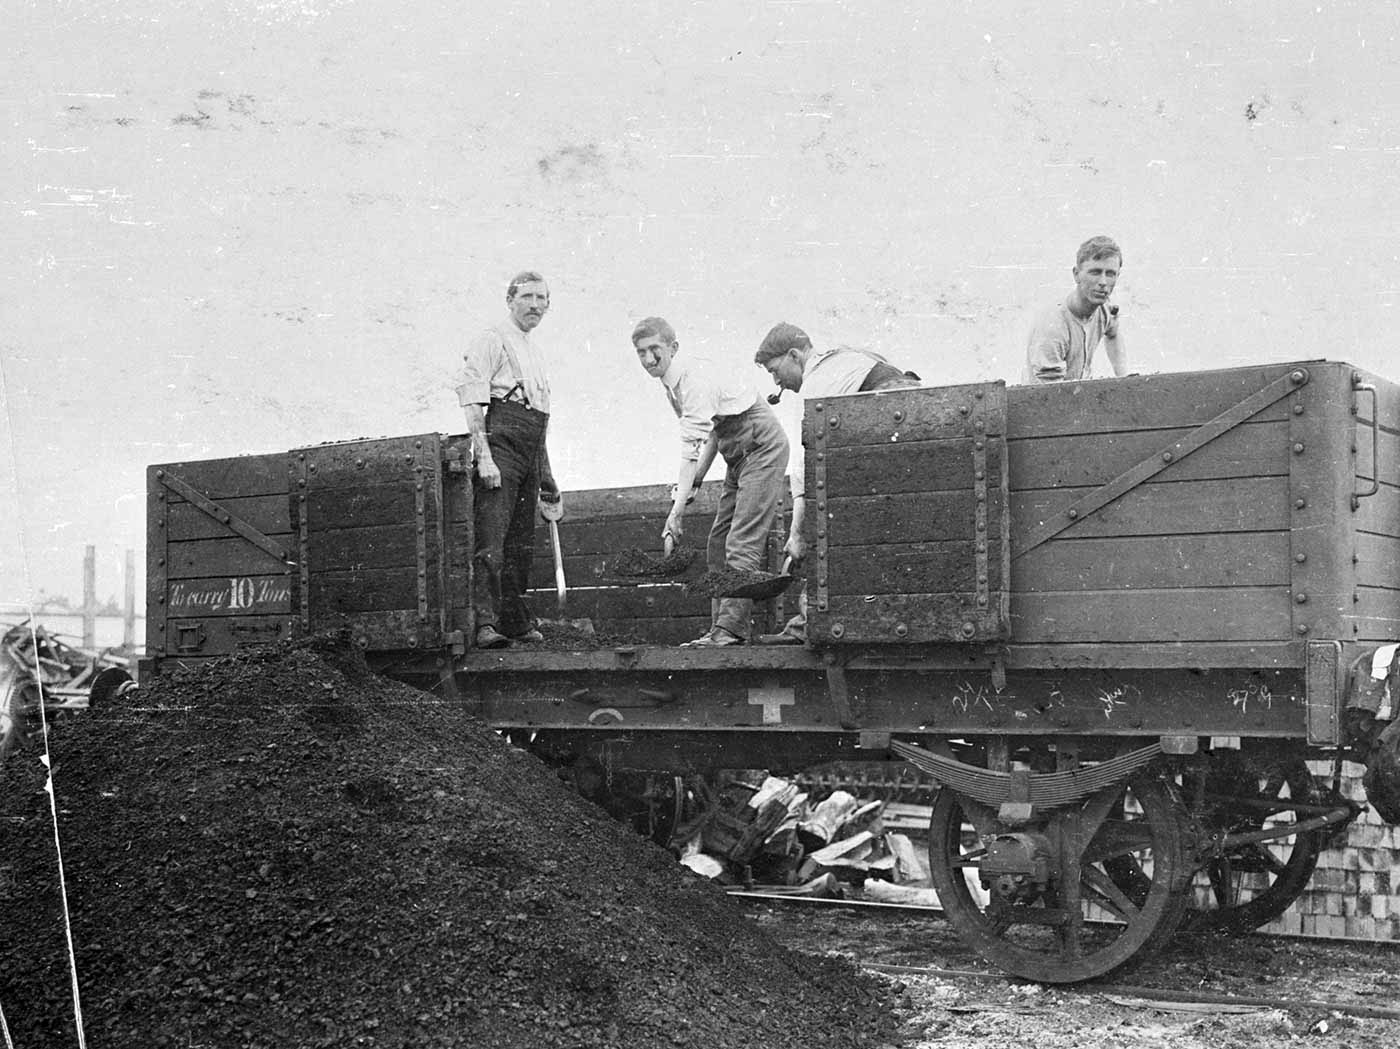 Men unloading coal from a railway wagon.